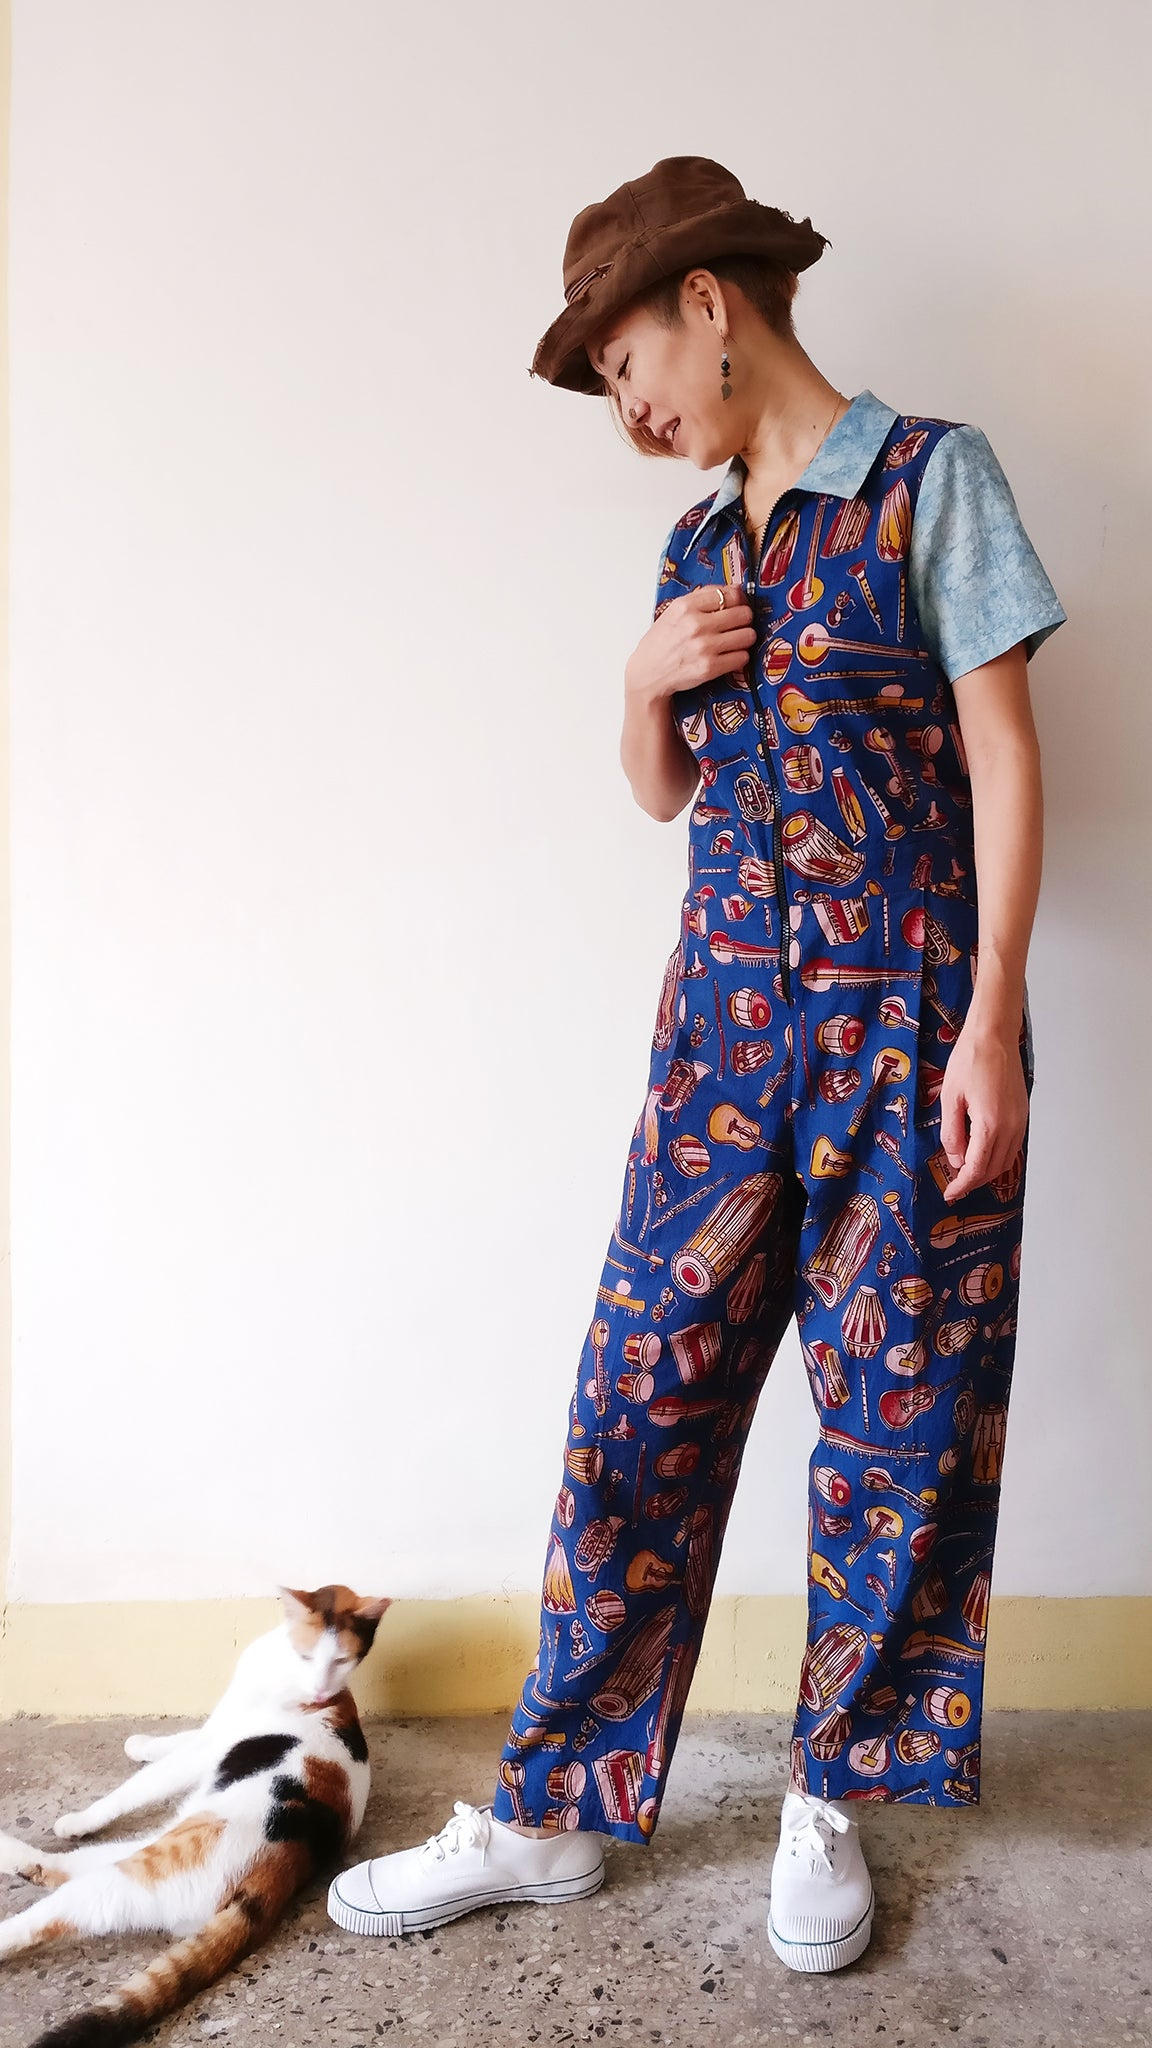 Our Kalamkari jumpsuit is a feel-good look-good alternative of jeans for Indian women! Boiler suit type with the loose comfy waistline and zipper opening. Shop online!